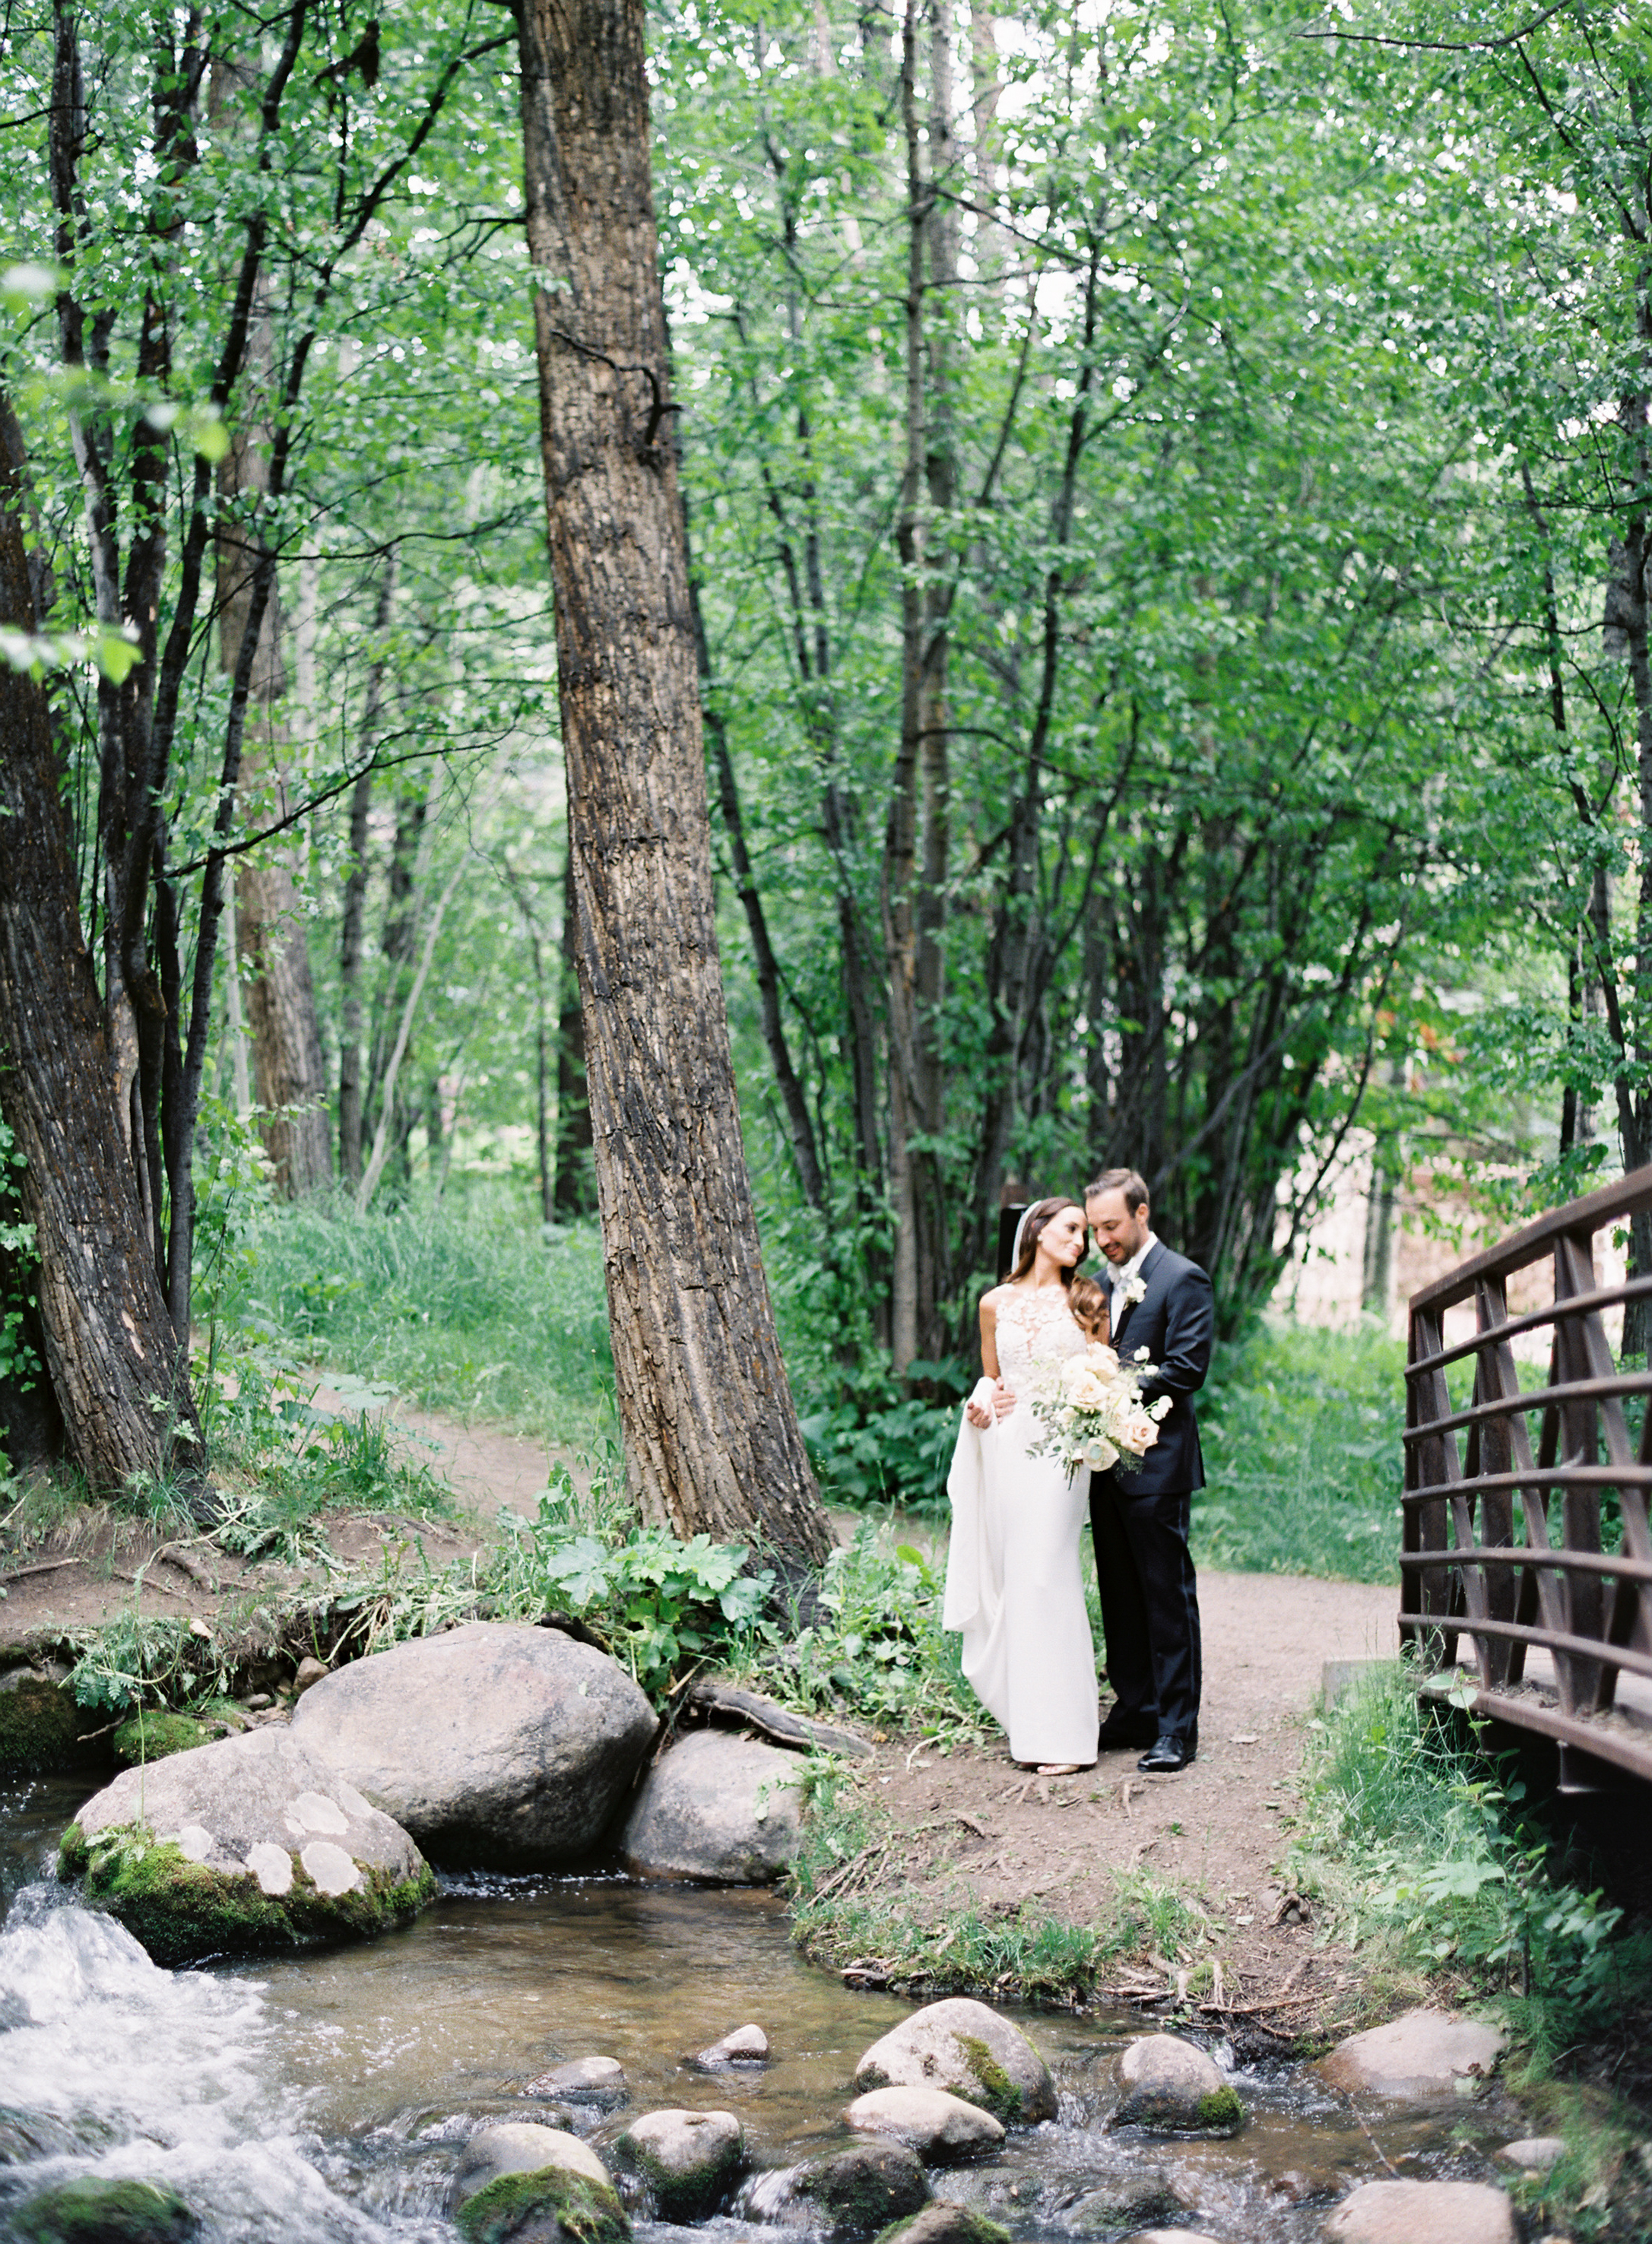 Olivia and Billy Wedding-Carrie King Photographer-21.jpg